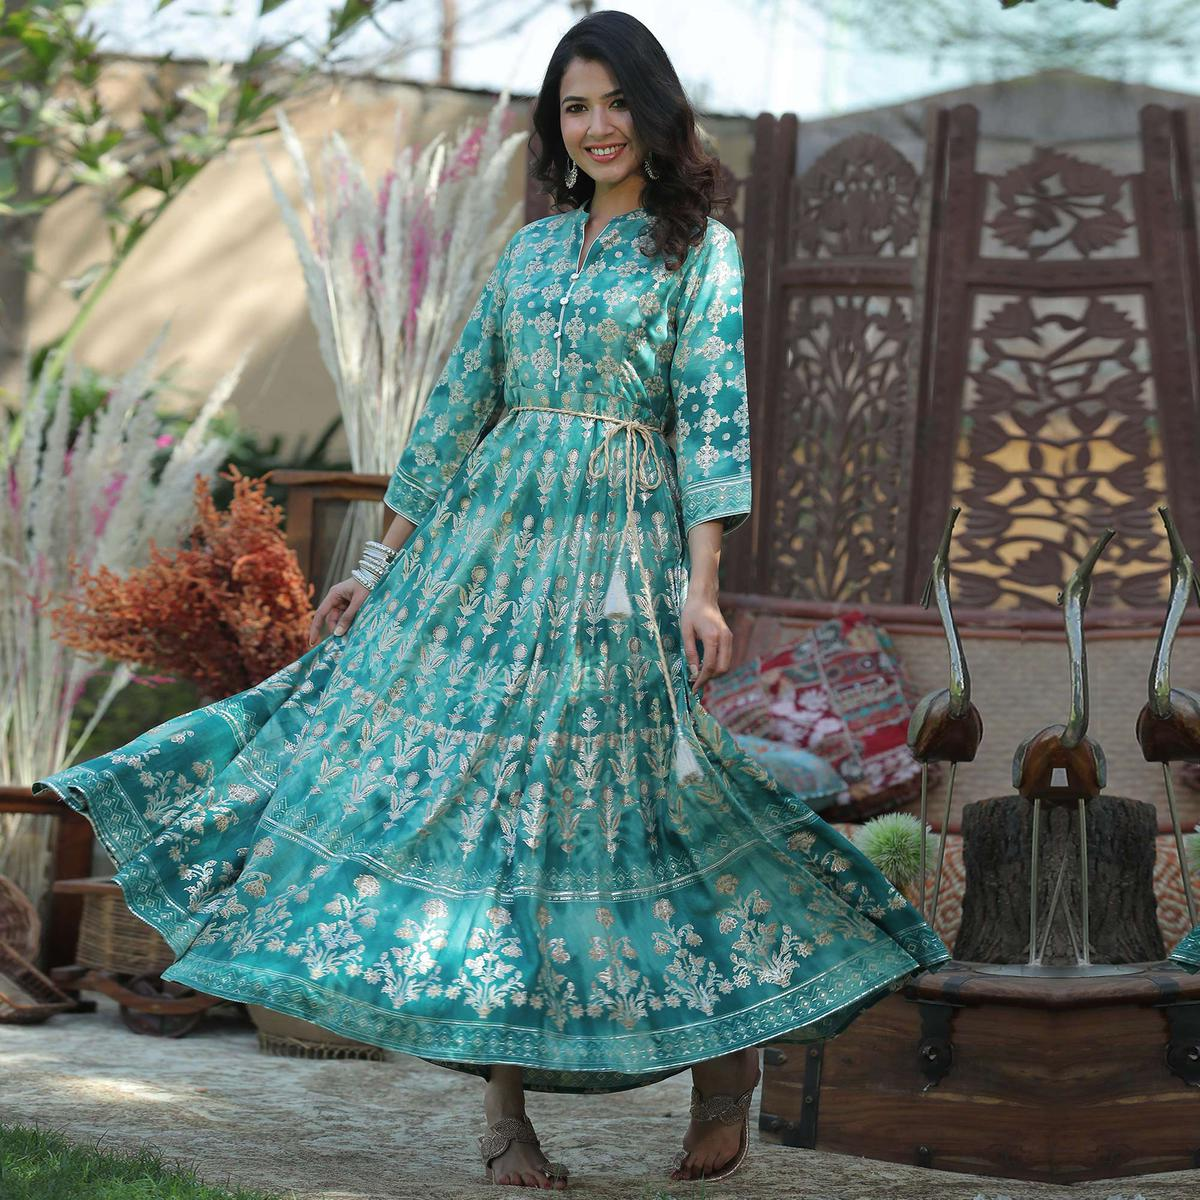 Juniper - Teal Rayon Printed Flared Dress With Waist Tie-up